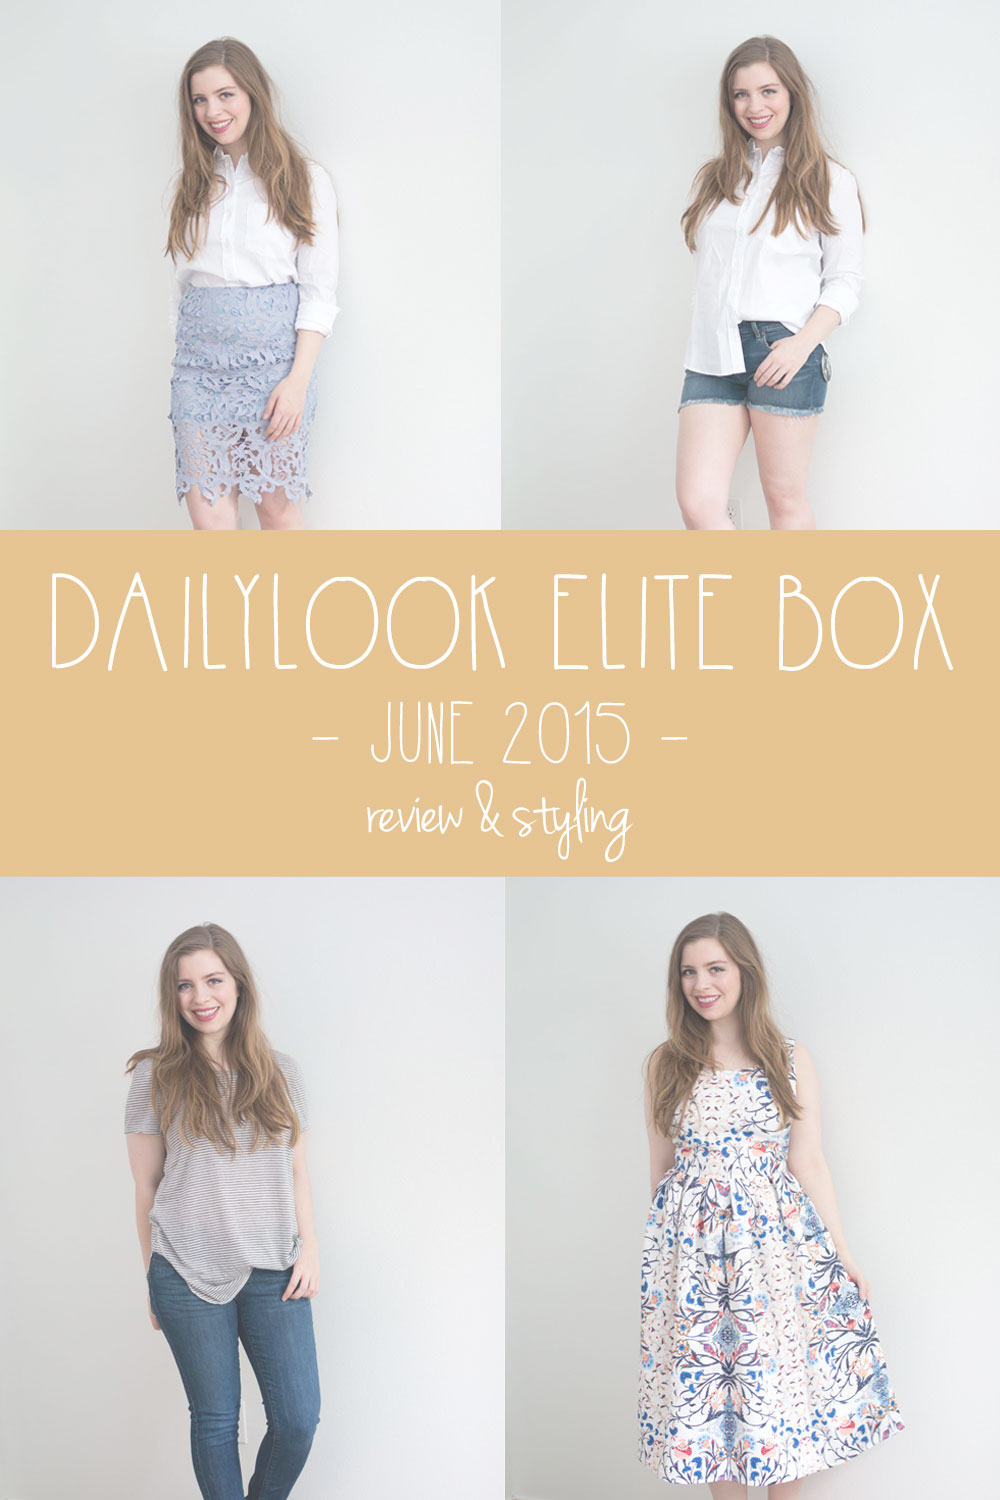 DailyLook Elite Box June 2015 Review / hellorigby seattle fashion blog